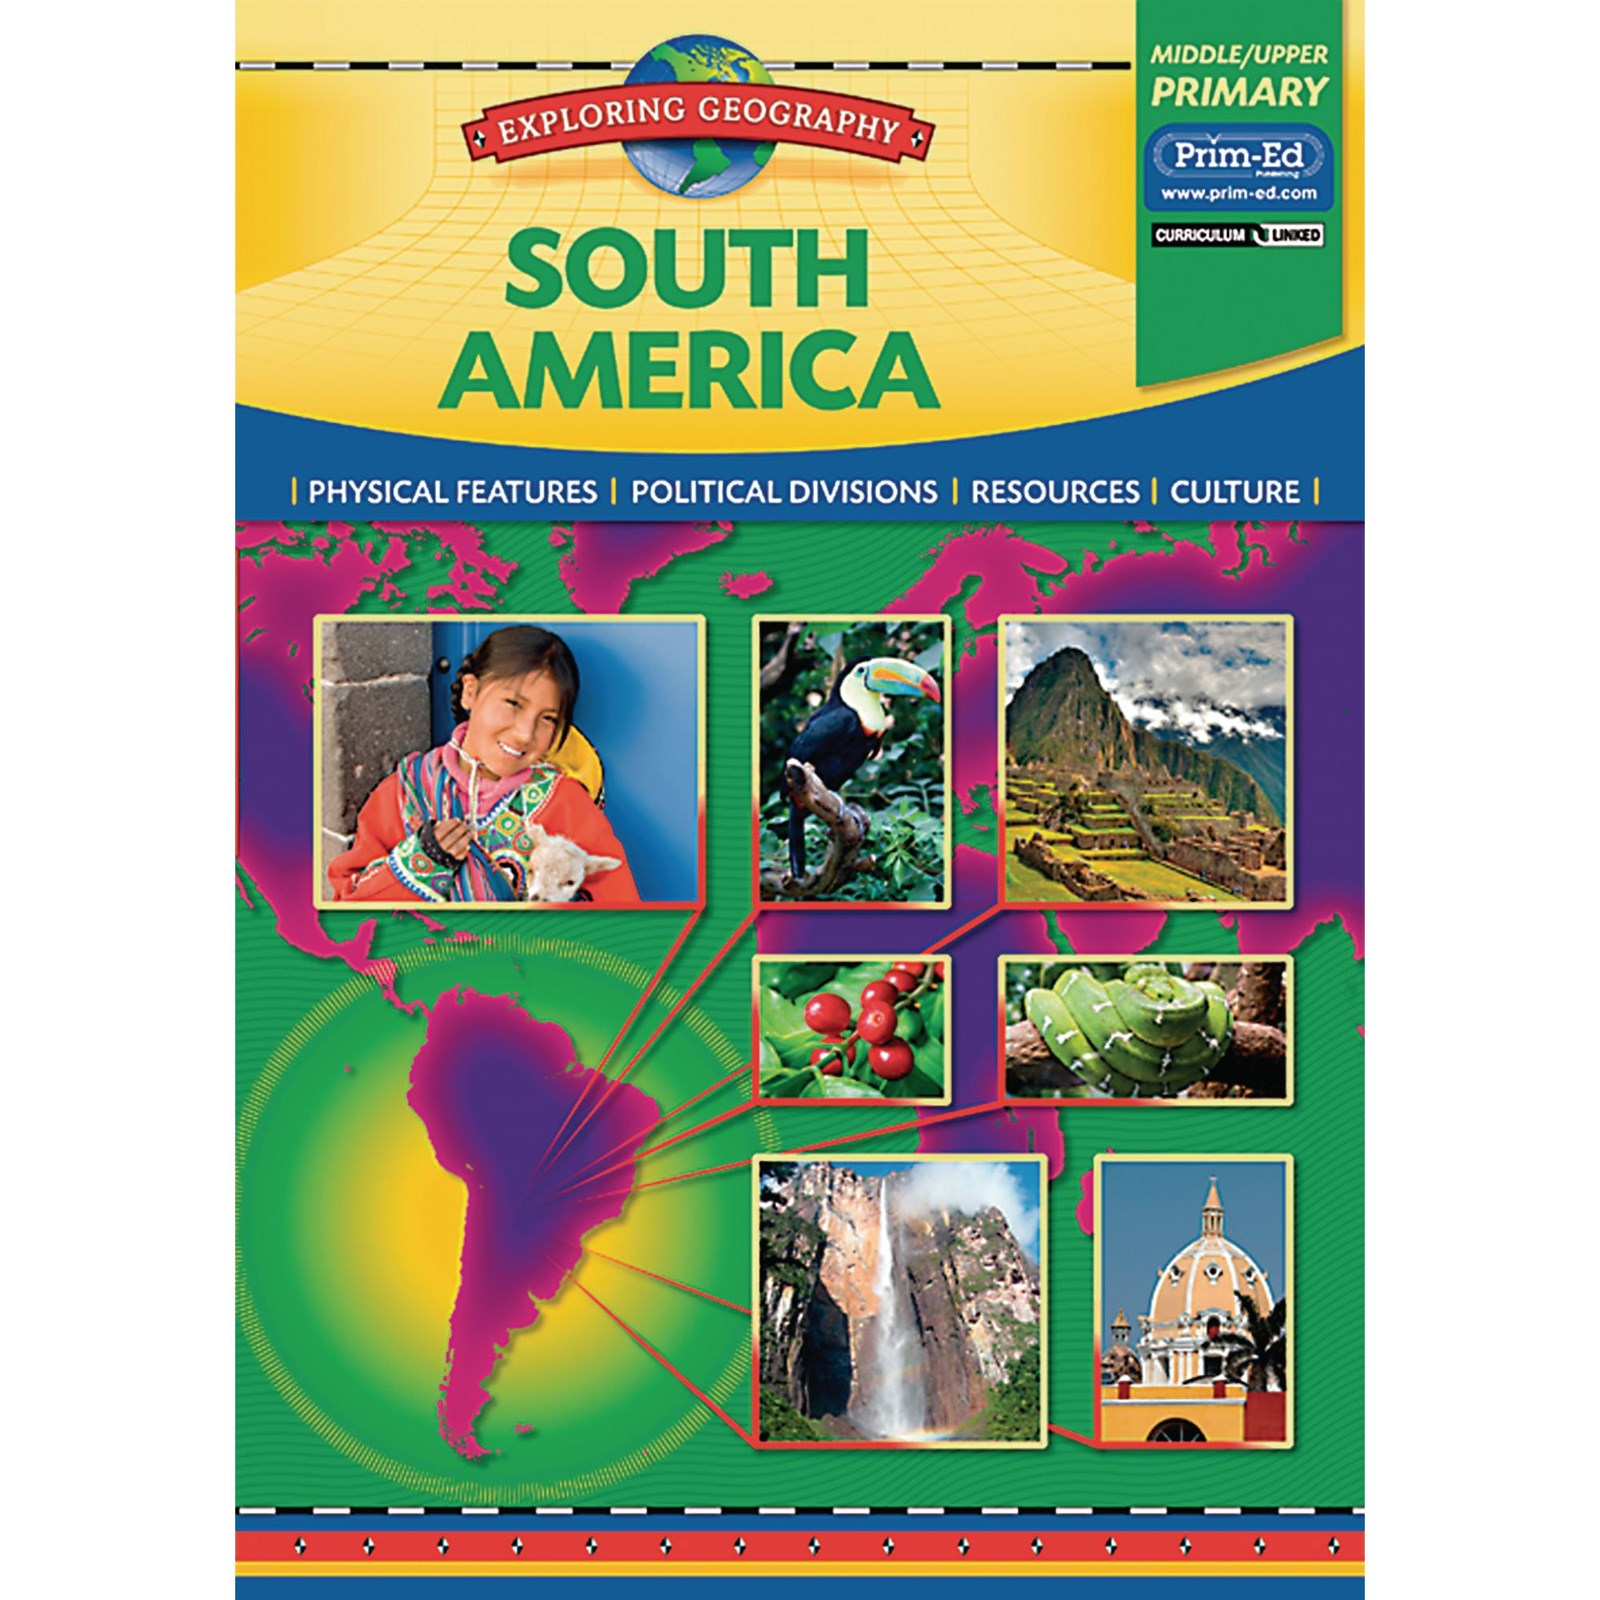 Exploring Geography- South America